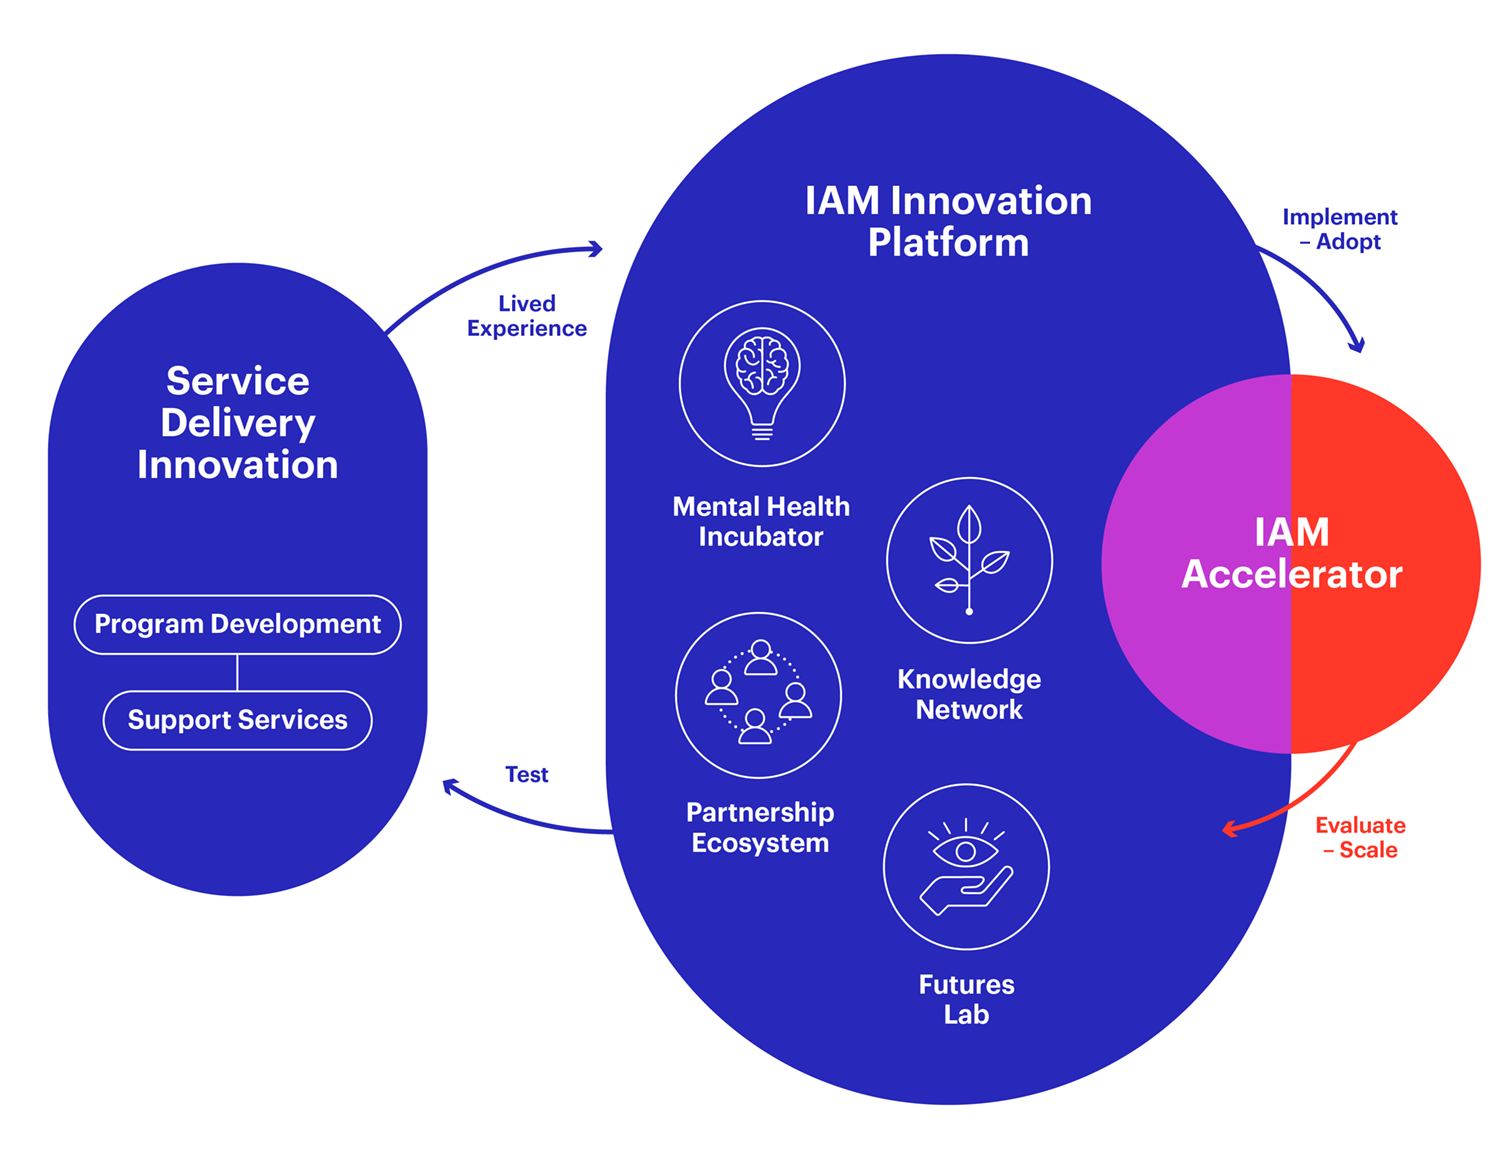 Diagram of IAM's Innovation Platform showing the 3 key components. First key component is Service Delivery Innovation which includes program development and support services. Second key component is IAM Innovation Platform which includes mental health incubator, knowledge network, partnership ecosystem, and futures lab. Third key component is IAM Accelerator.